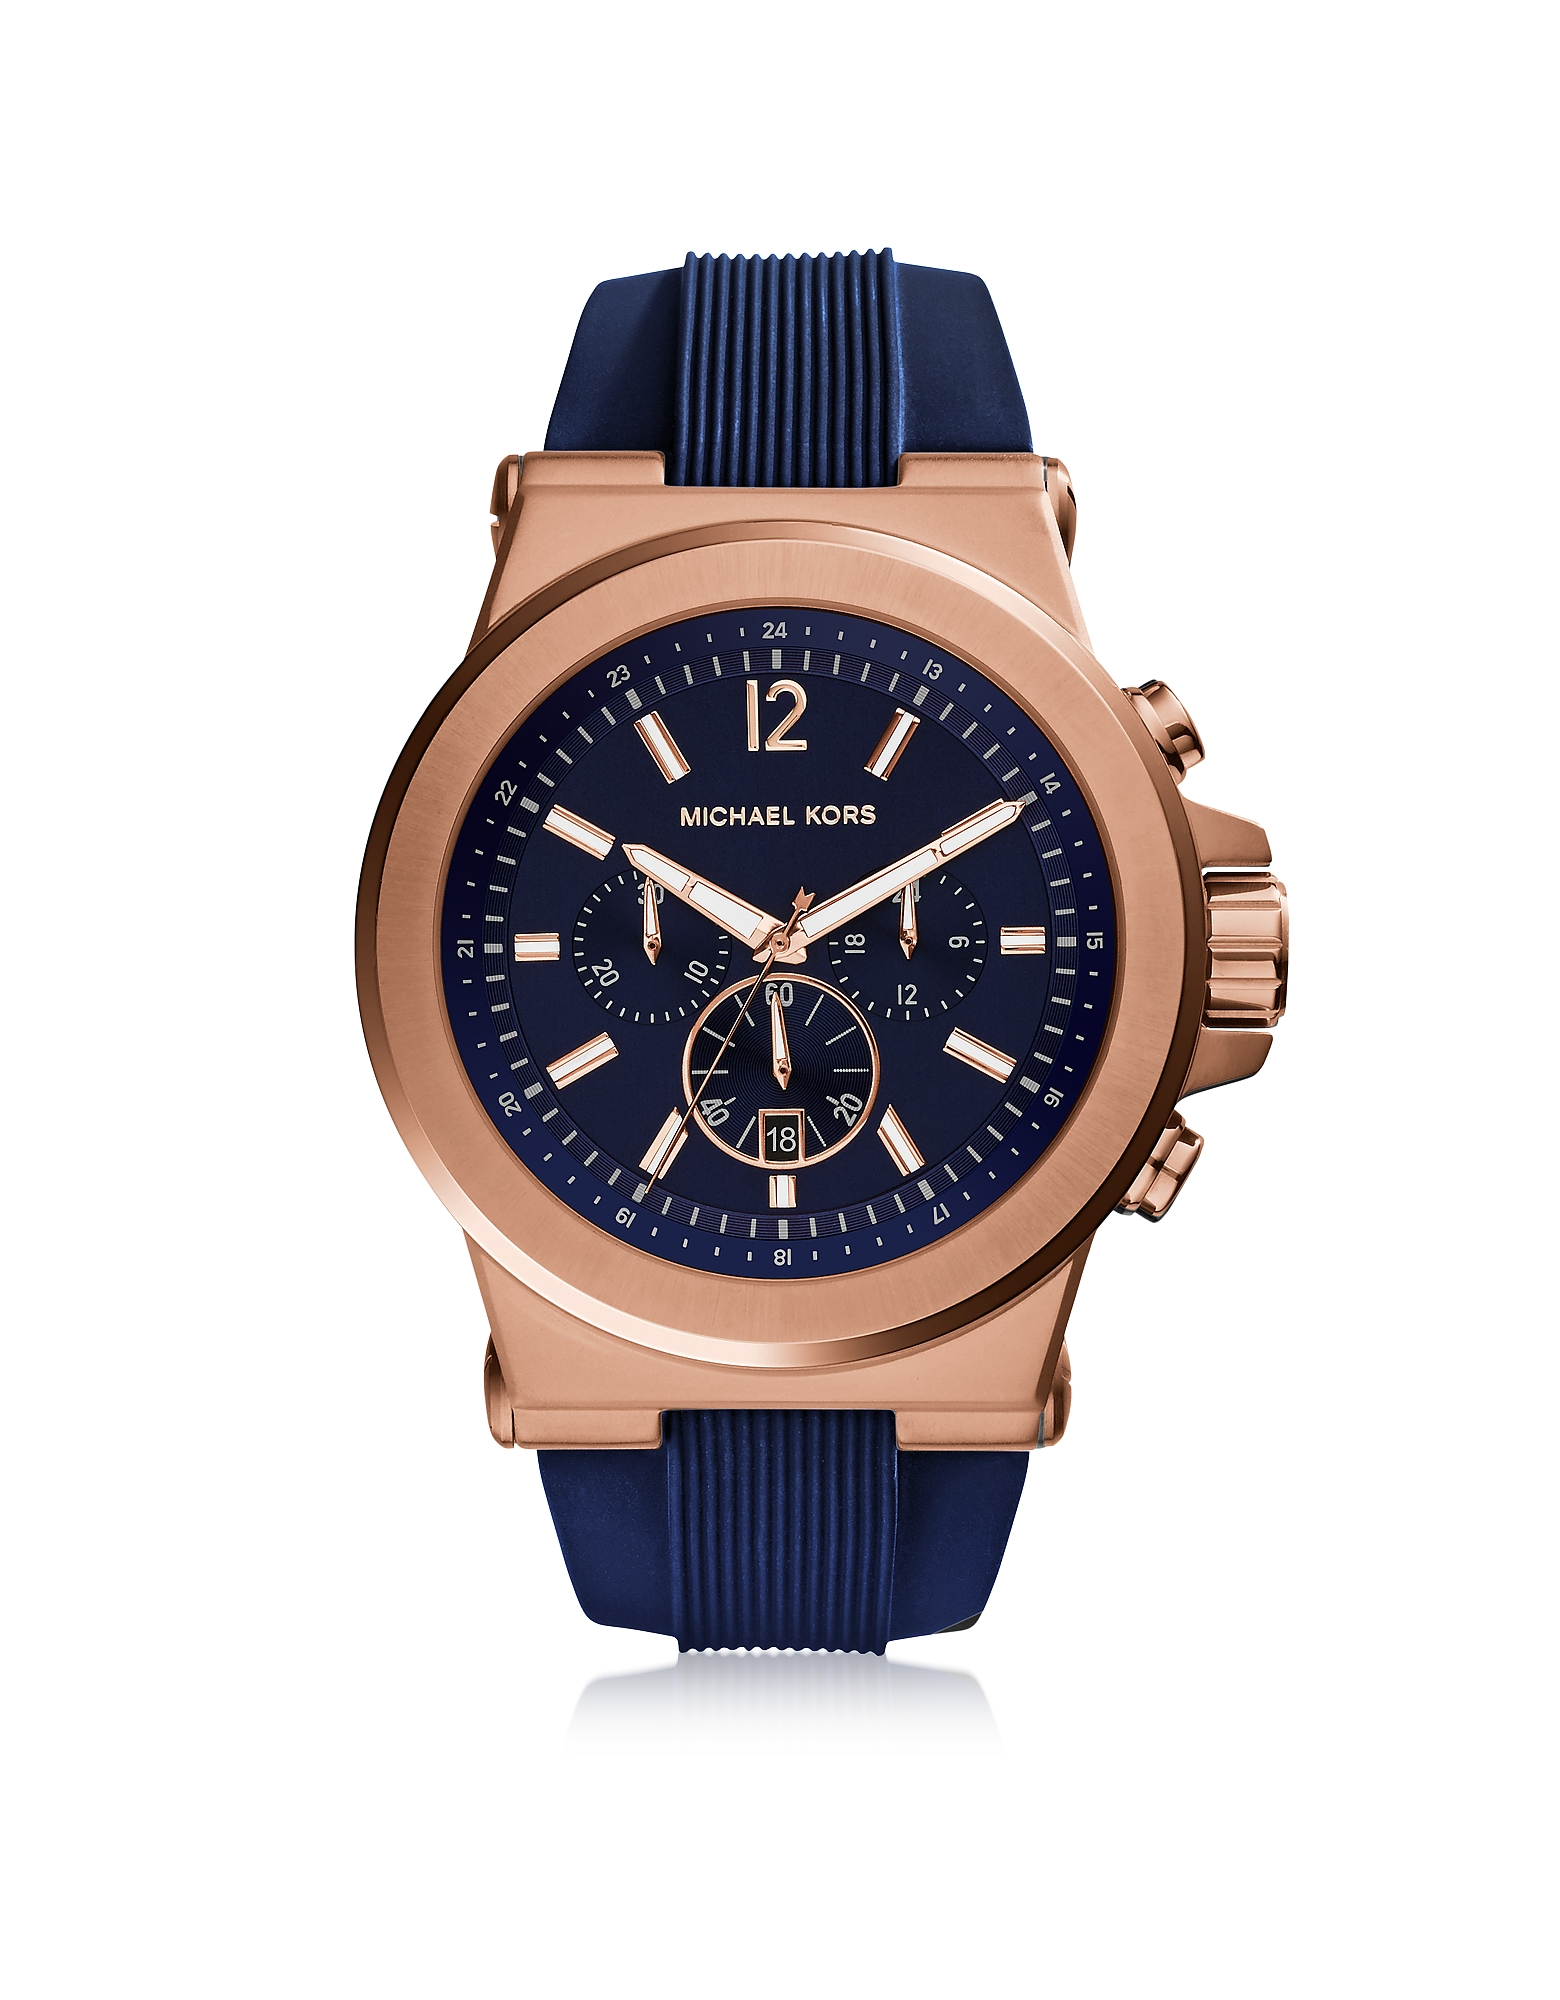 Michael Kors Men's Watches, Dylan Rose Gold Tone Stainless Steel Case and Blue Silicone Strap Men's